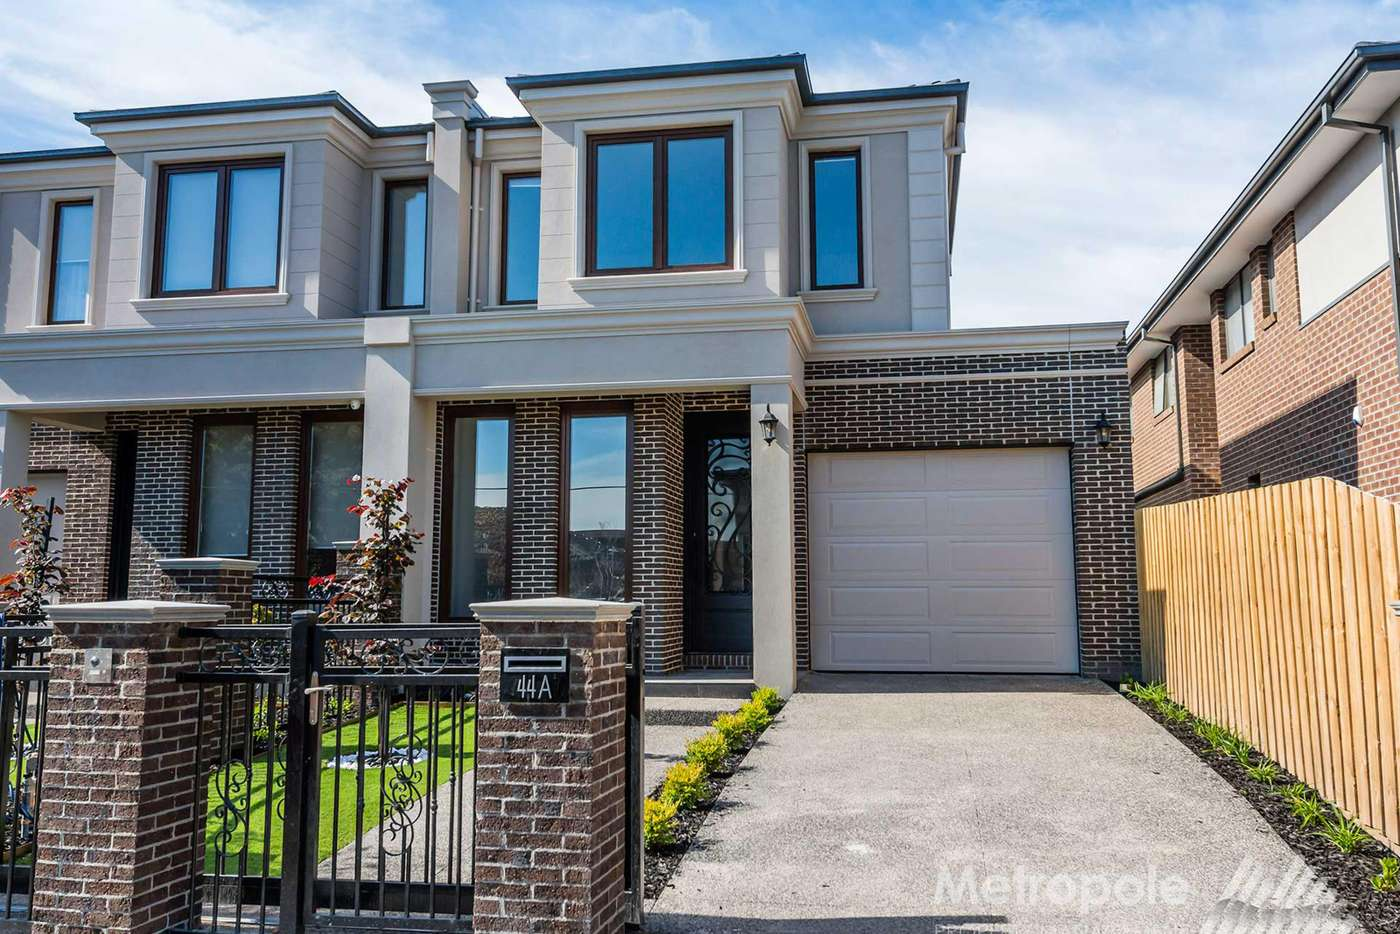 Main view of Homely townhouse listing, 44A Wavell Street, Bentleigh VIC 3204